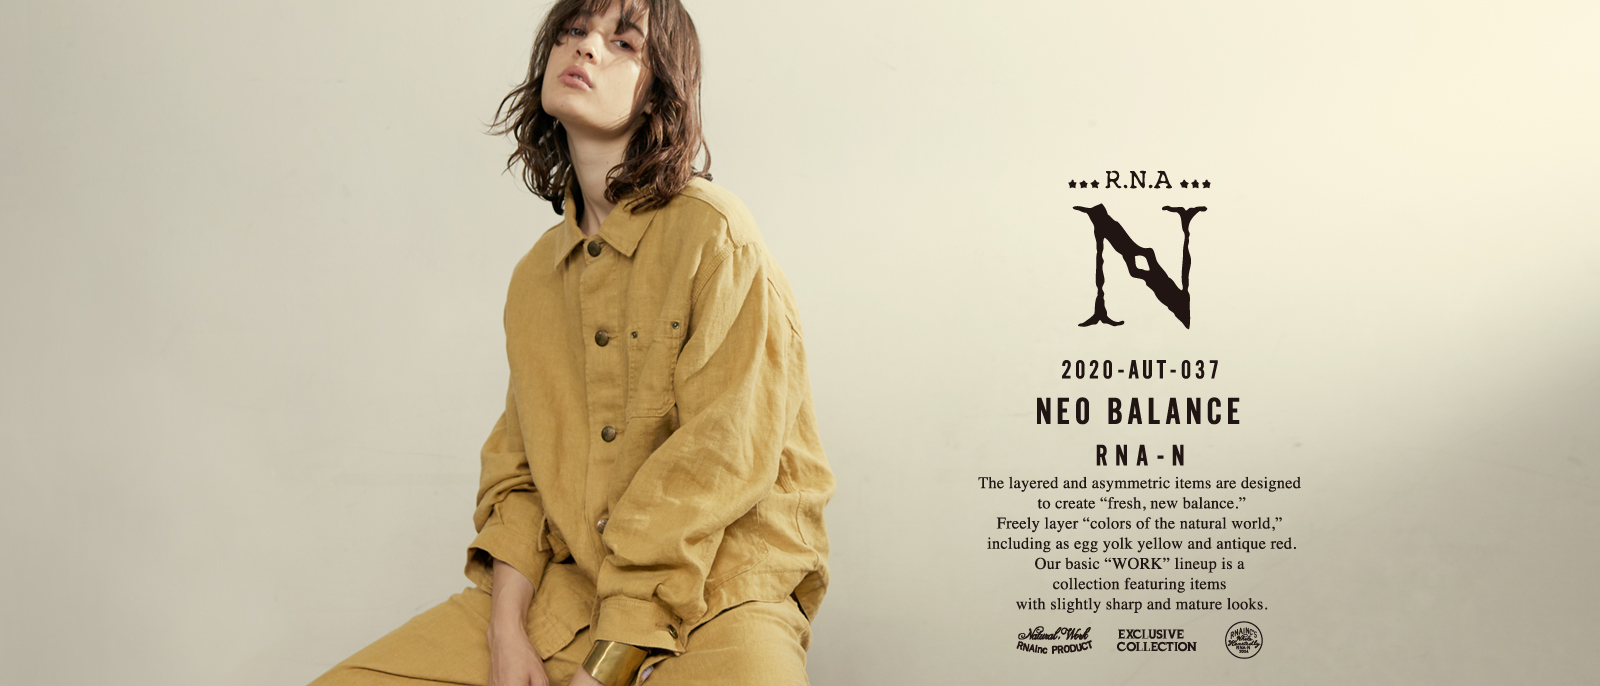 RNA-N 2020 AUTUMN COLLECTION